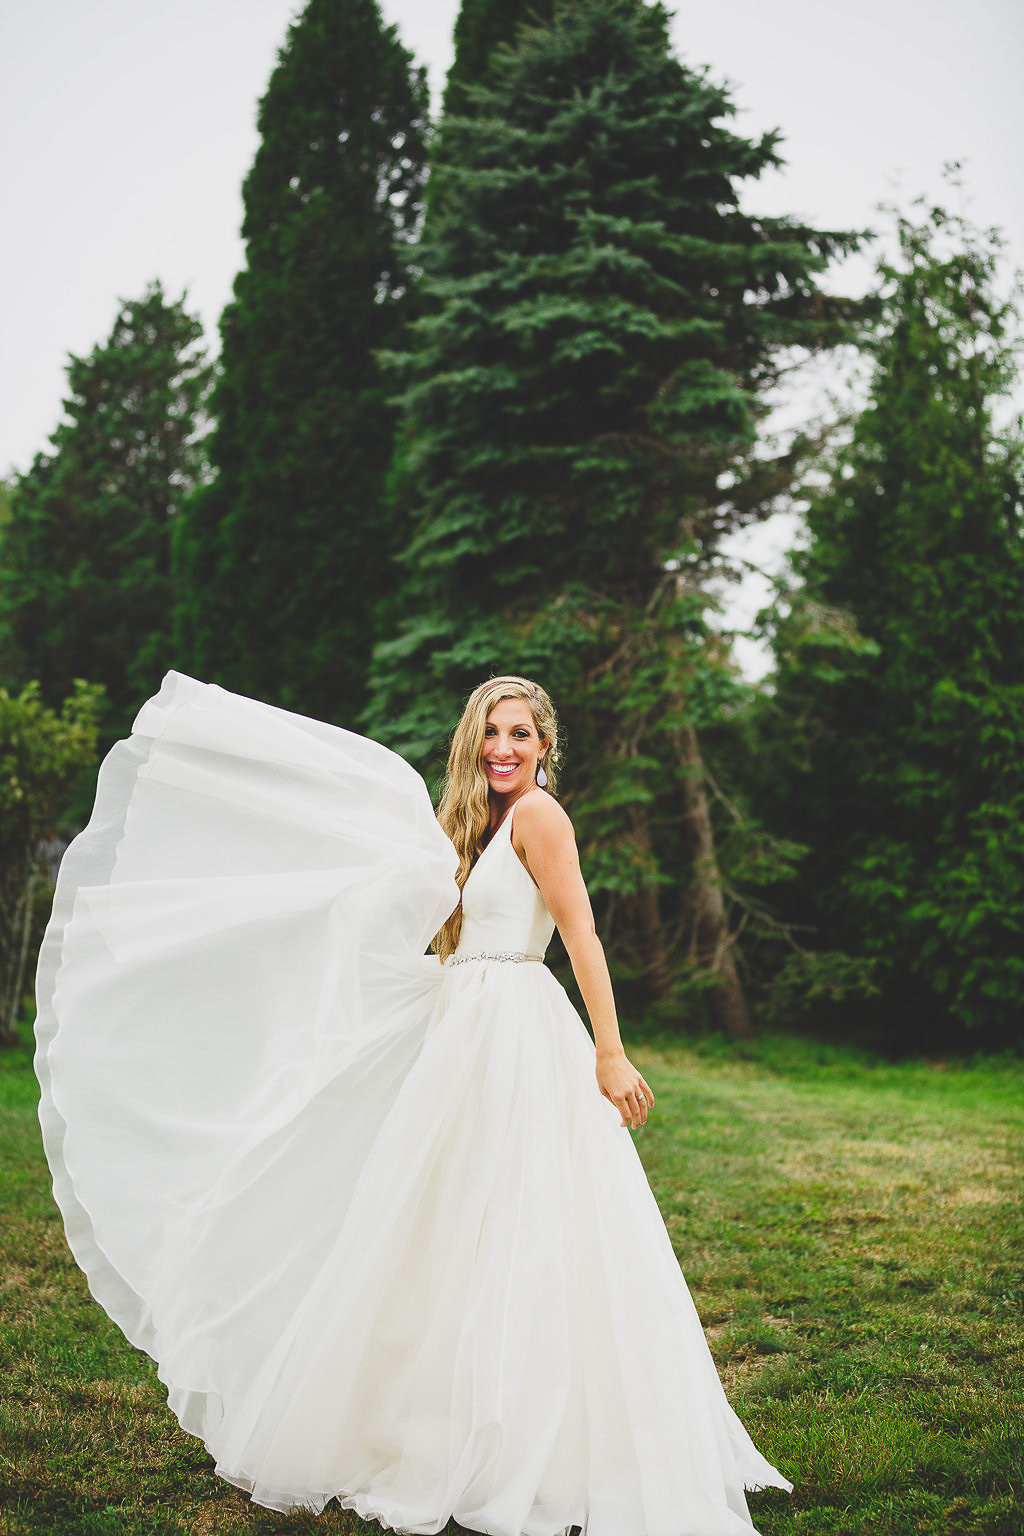 Leanne Marshall for Lovely Bride wedding dress | cassiecastellaw.com